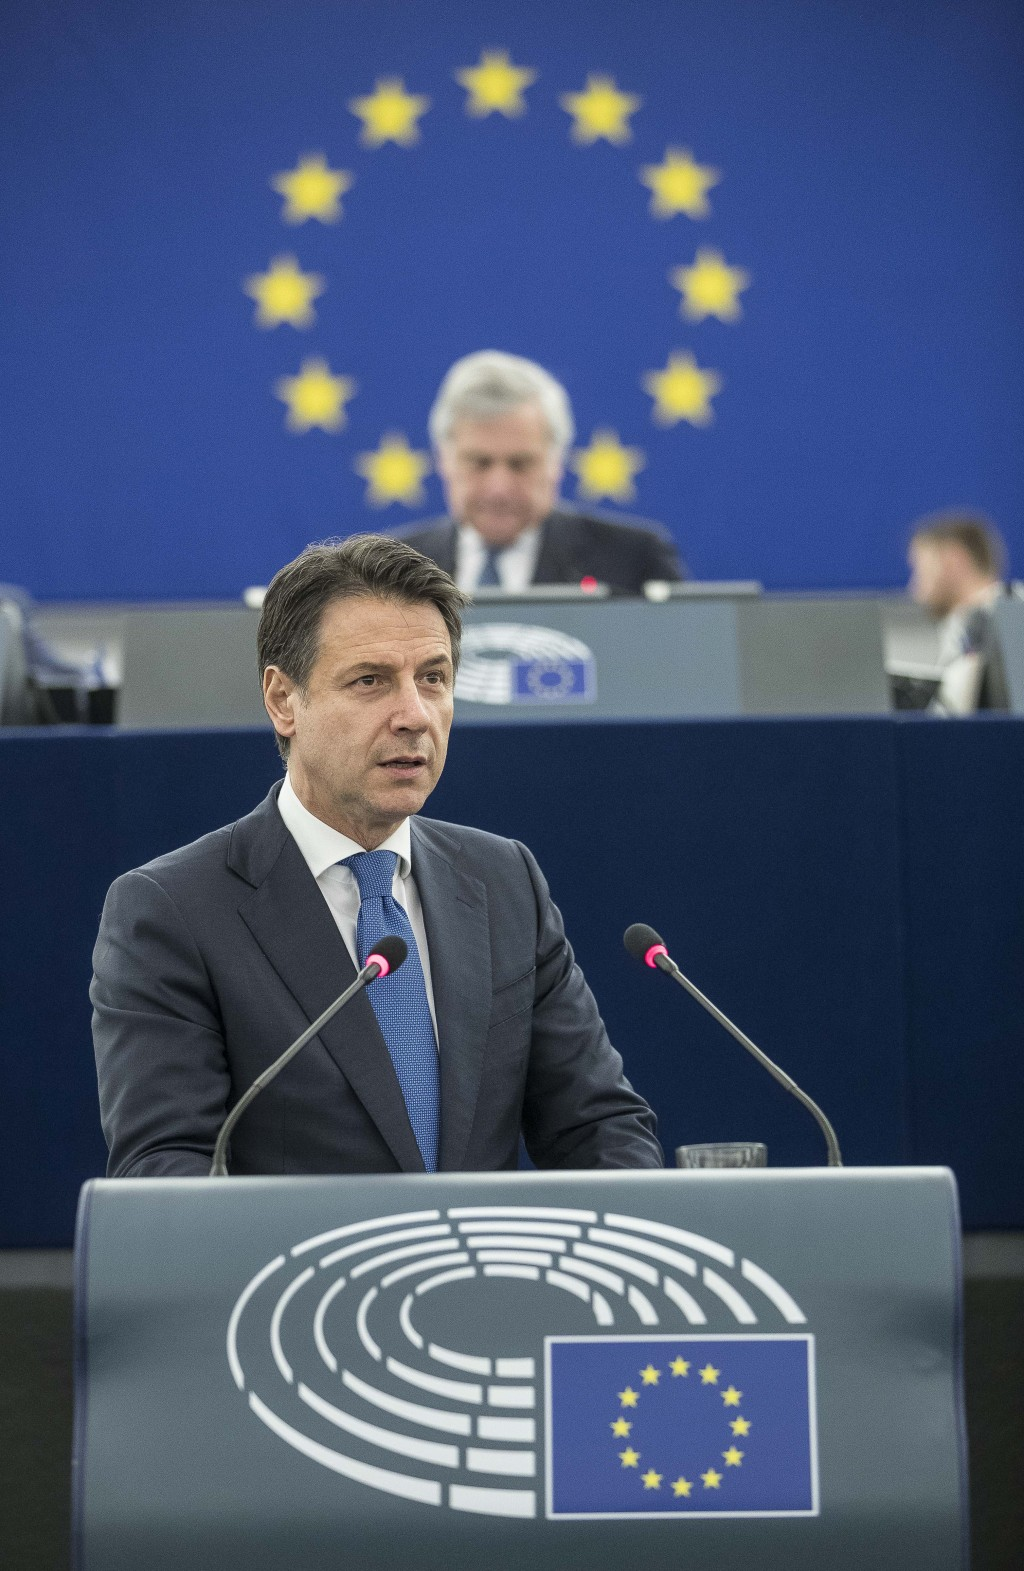 Italian Prime Minister Giuseppe Conte speaks during a debate on the future Europe at the European Parliament in Strasbourg, eastern France, Tuesday Fe